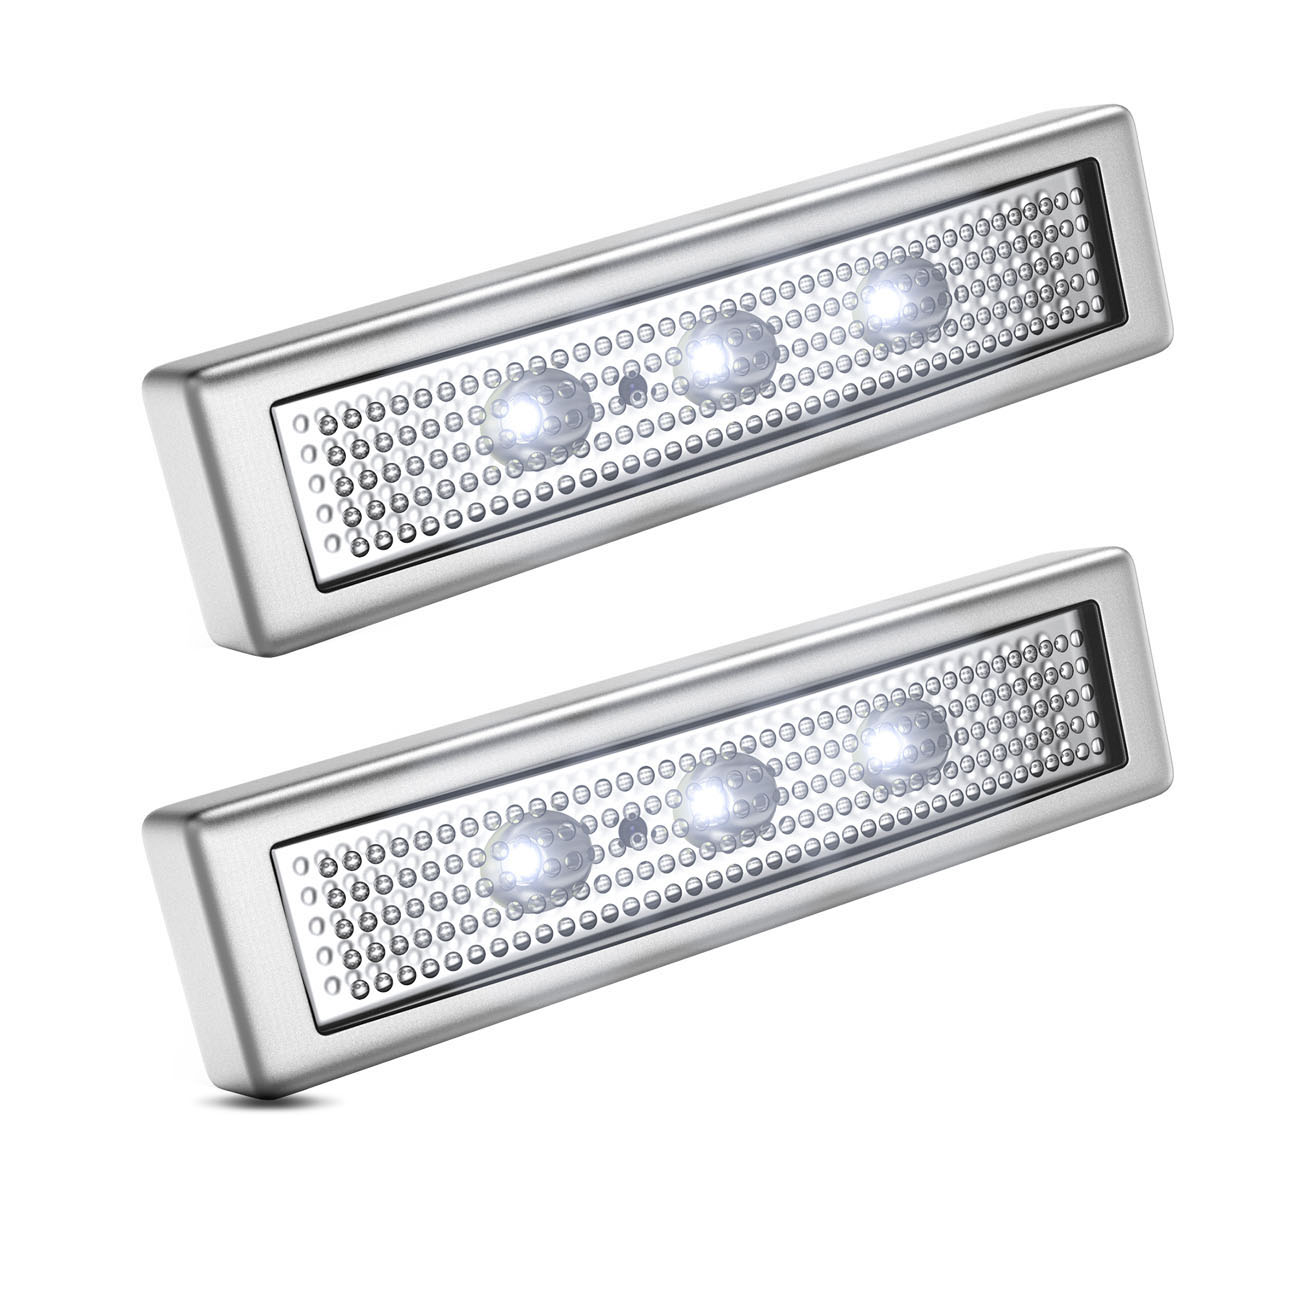 LED Push-Light mit Batteriebetrieb | 2er Set - 1